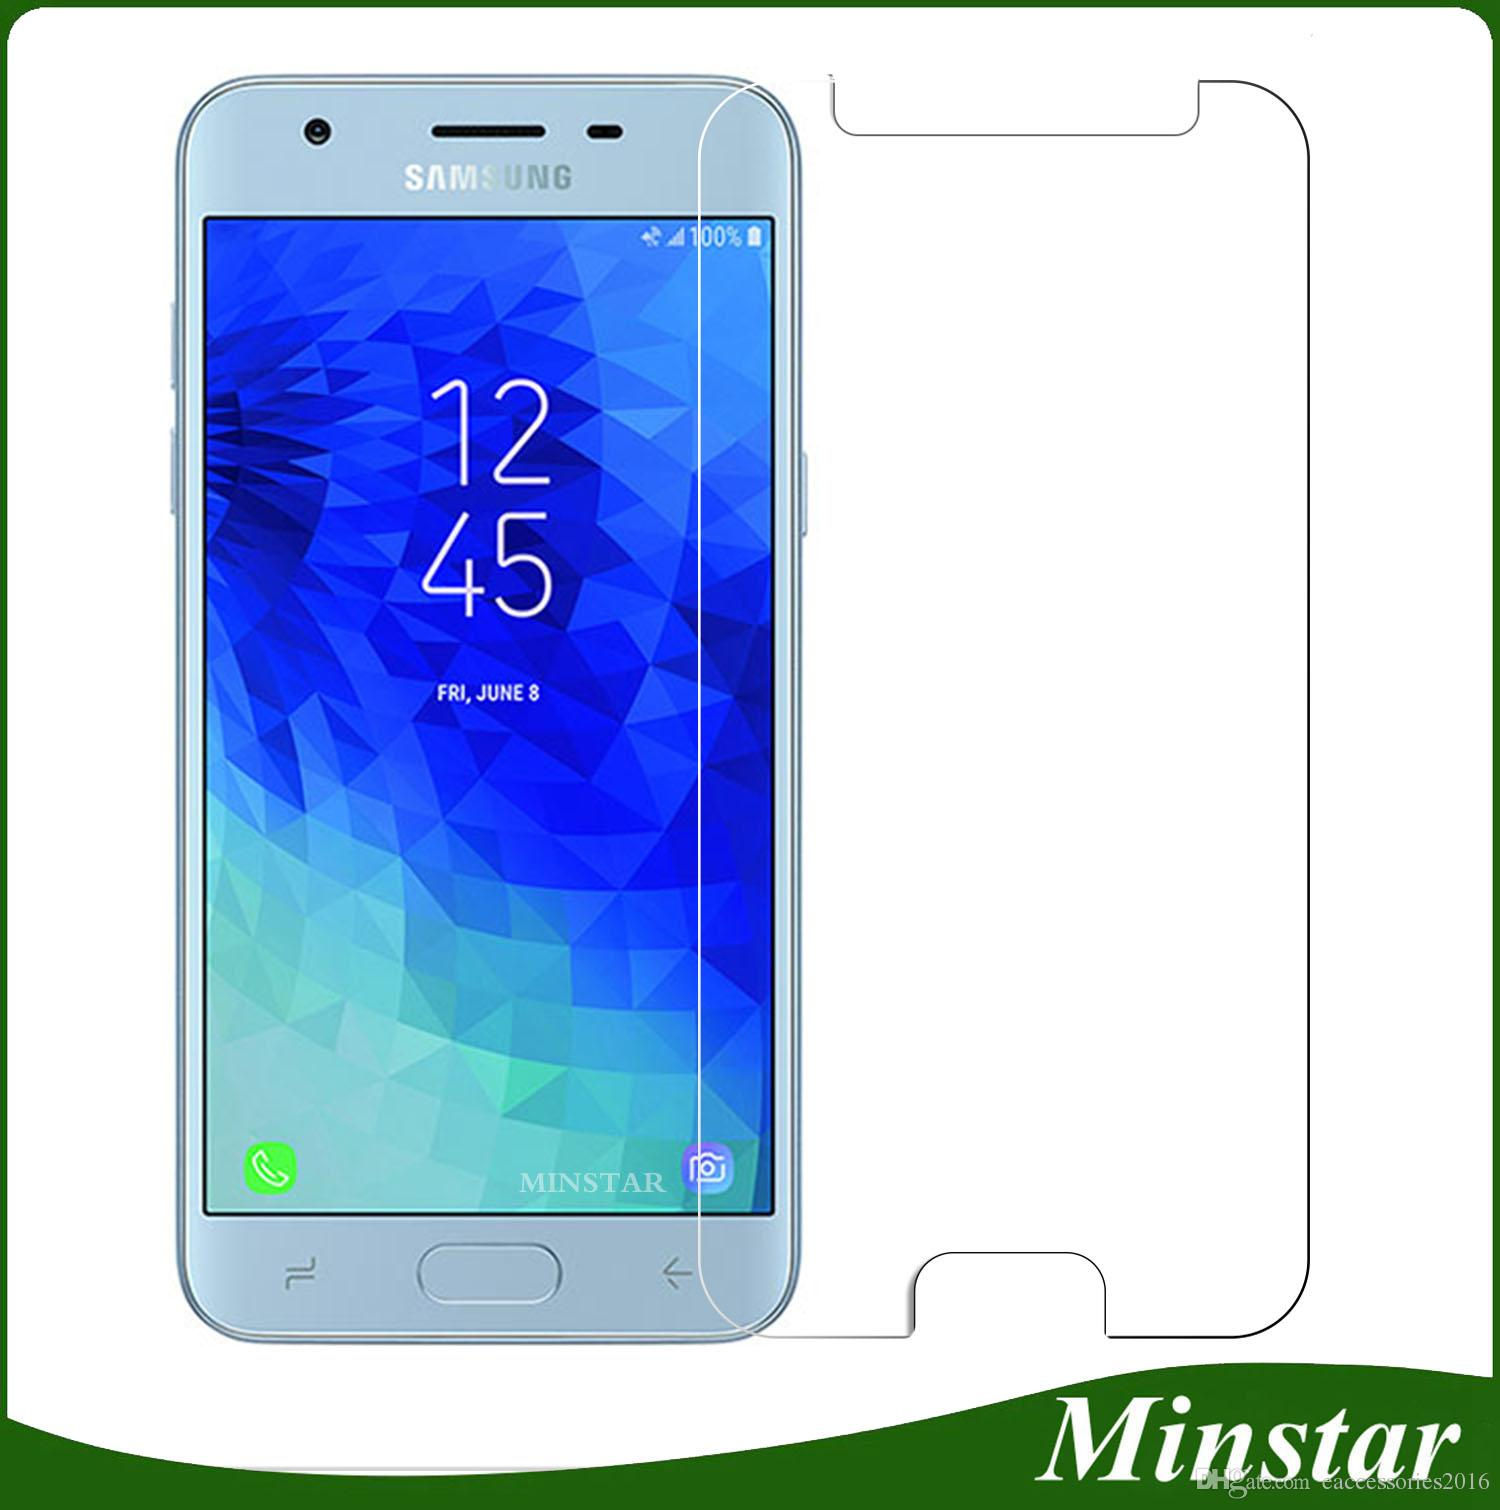 For Samsung Galaxy J3 Achieve J3 Star J337 2018 Boost Mobile New Thin Smooth Tempered Glass Metro Pcs Anti Scratch Screen Protector Package Anti Scratch